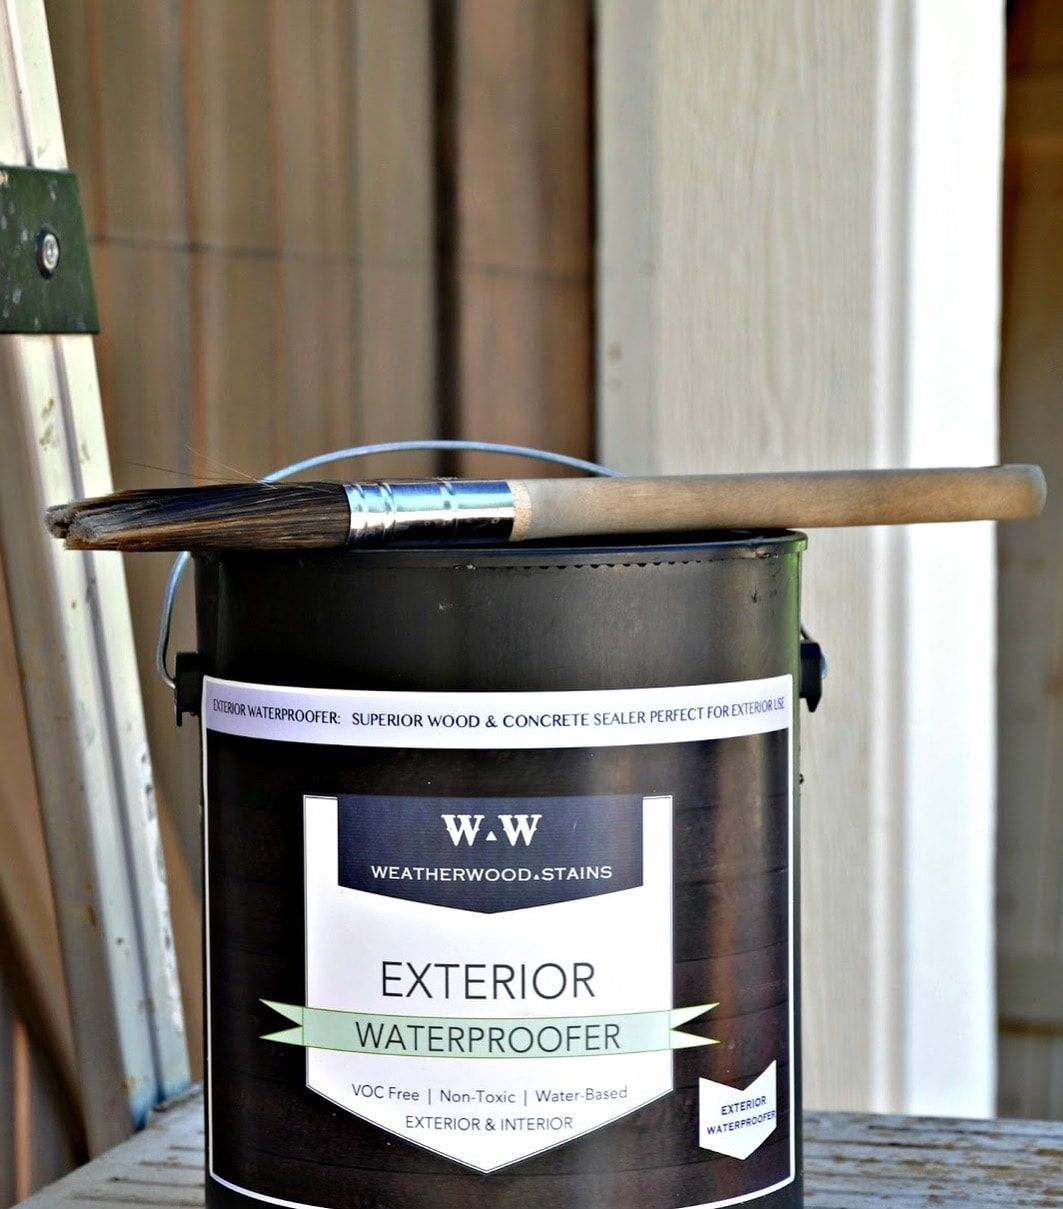 Weatherwood Stain's EXTERIOR WATERPROOFER is more than a